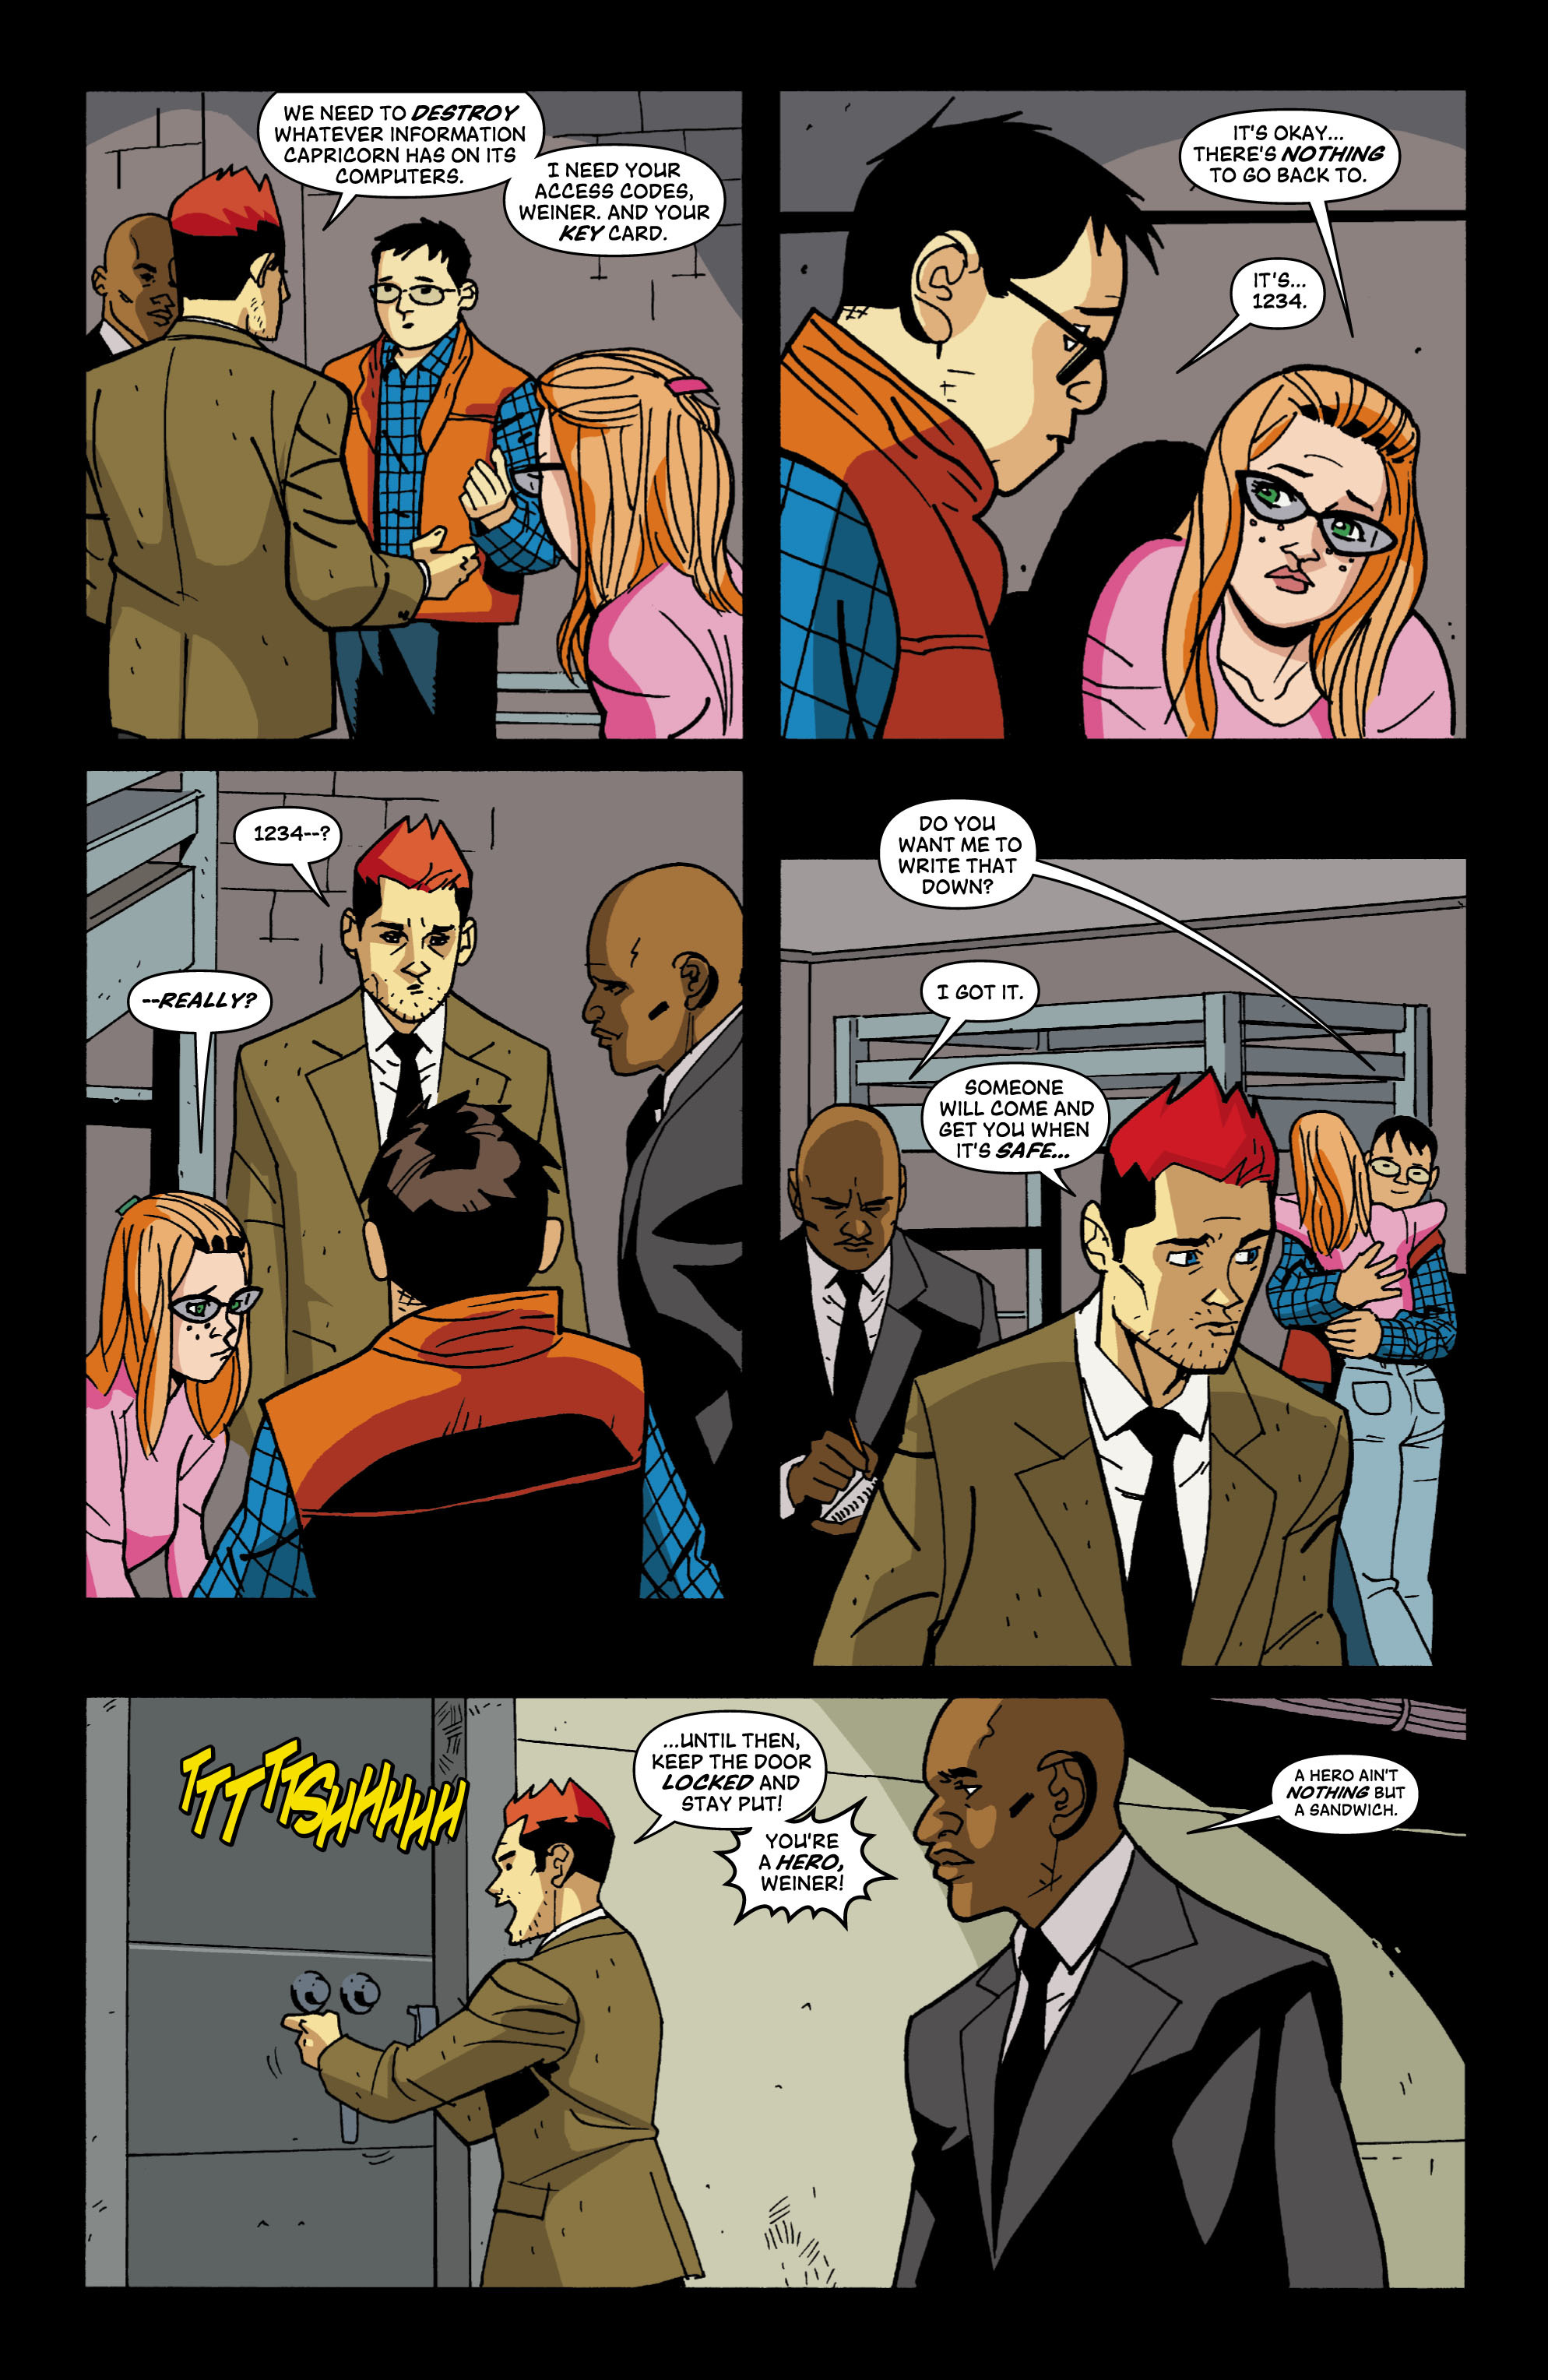 Read online Red Herring comic -  Issue #4 - 17